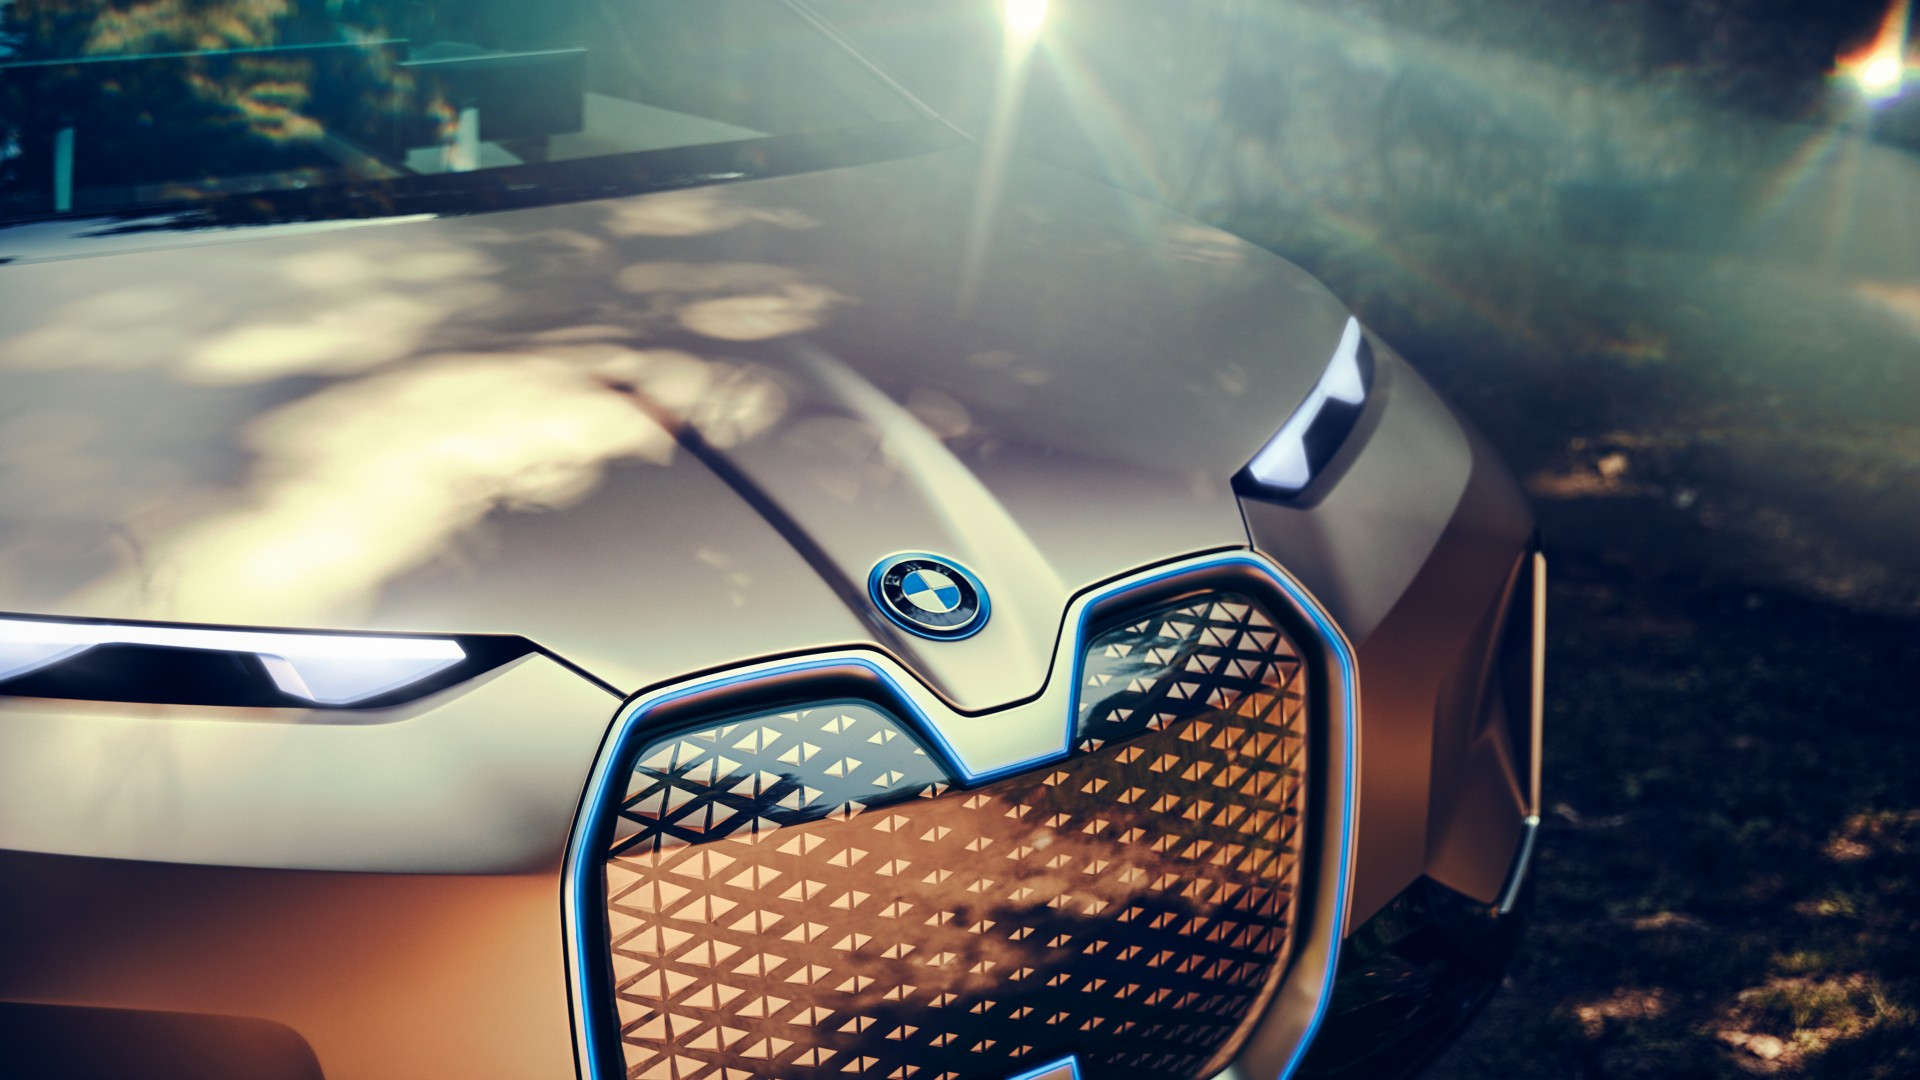 BMW Vision iNEXT Future SUV Car 4K 5 Wallpaper | HD Car ...